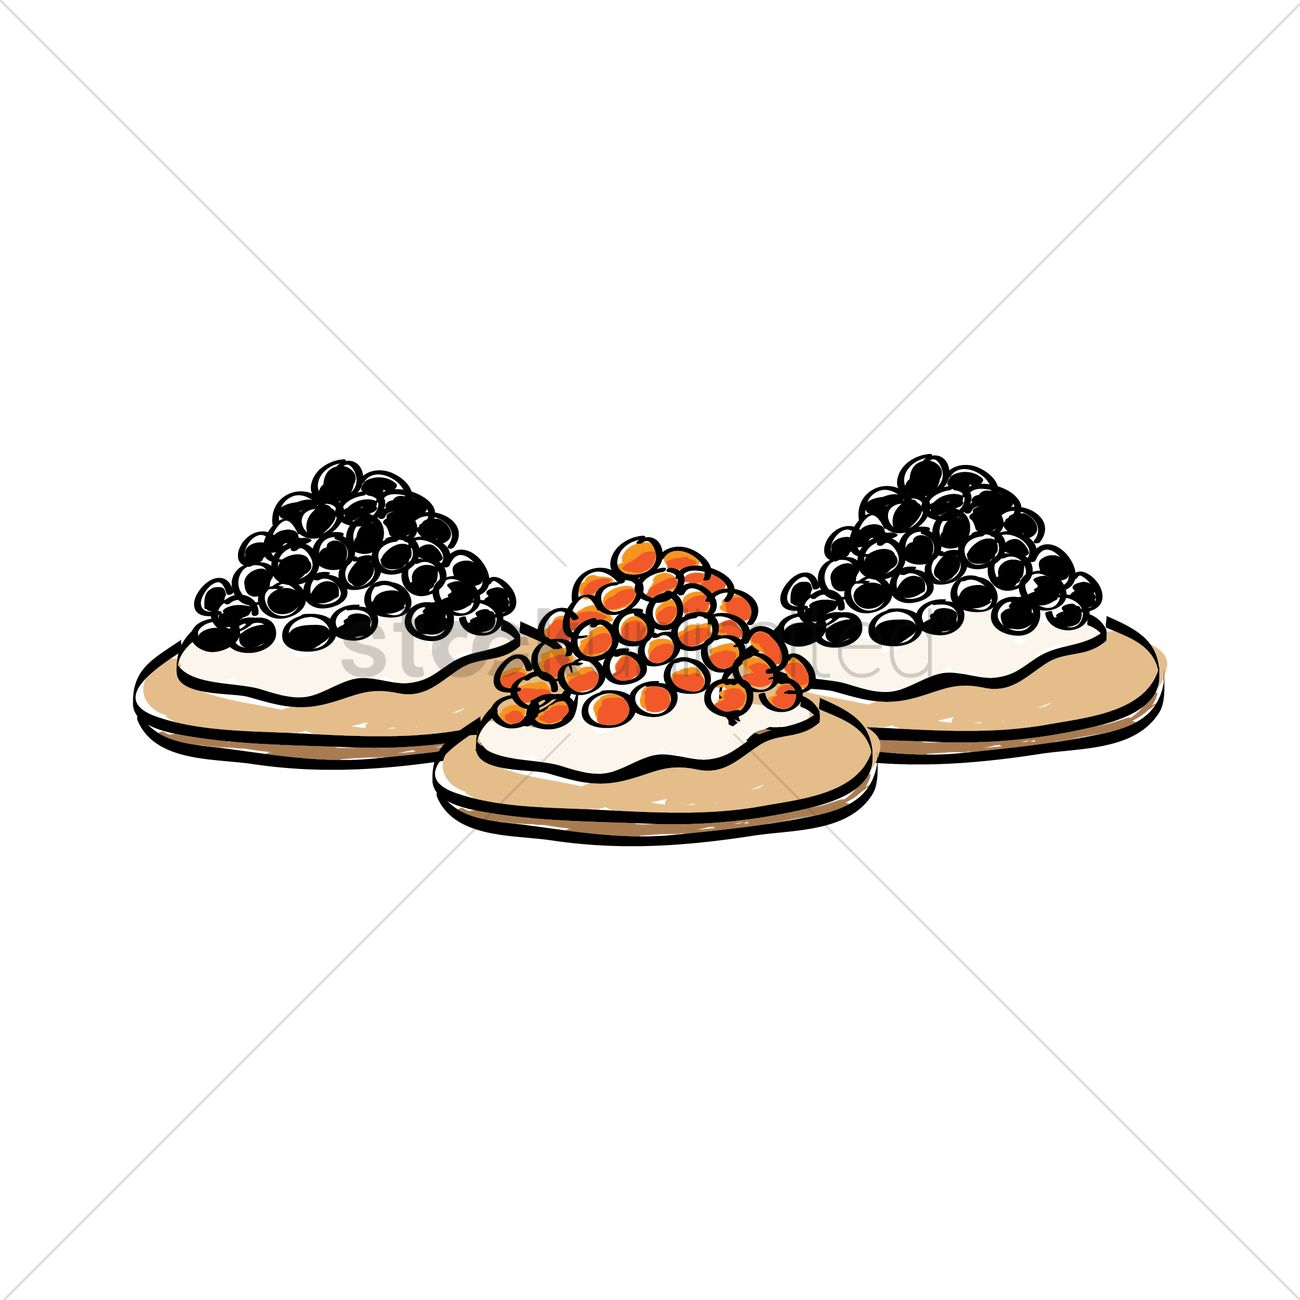 Caviar canapes vector image 1413155 stockunlimited for Canape vector download